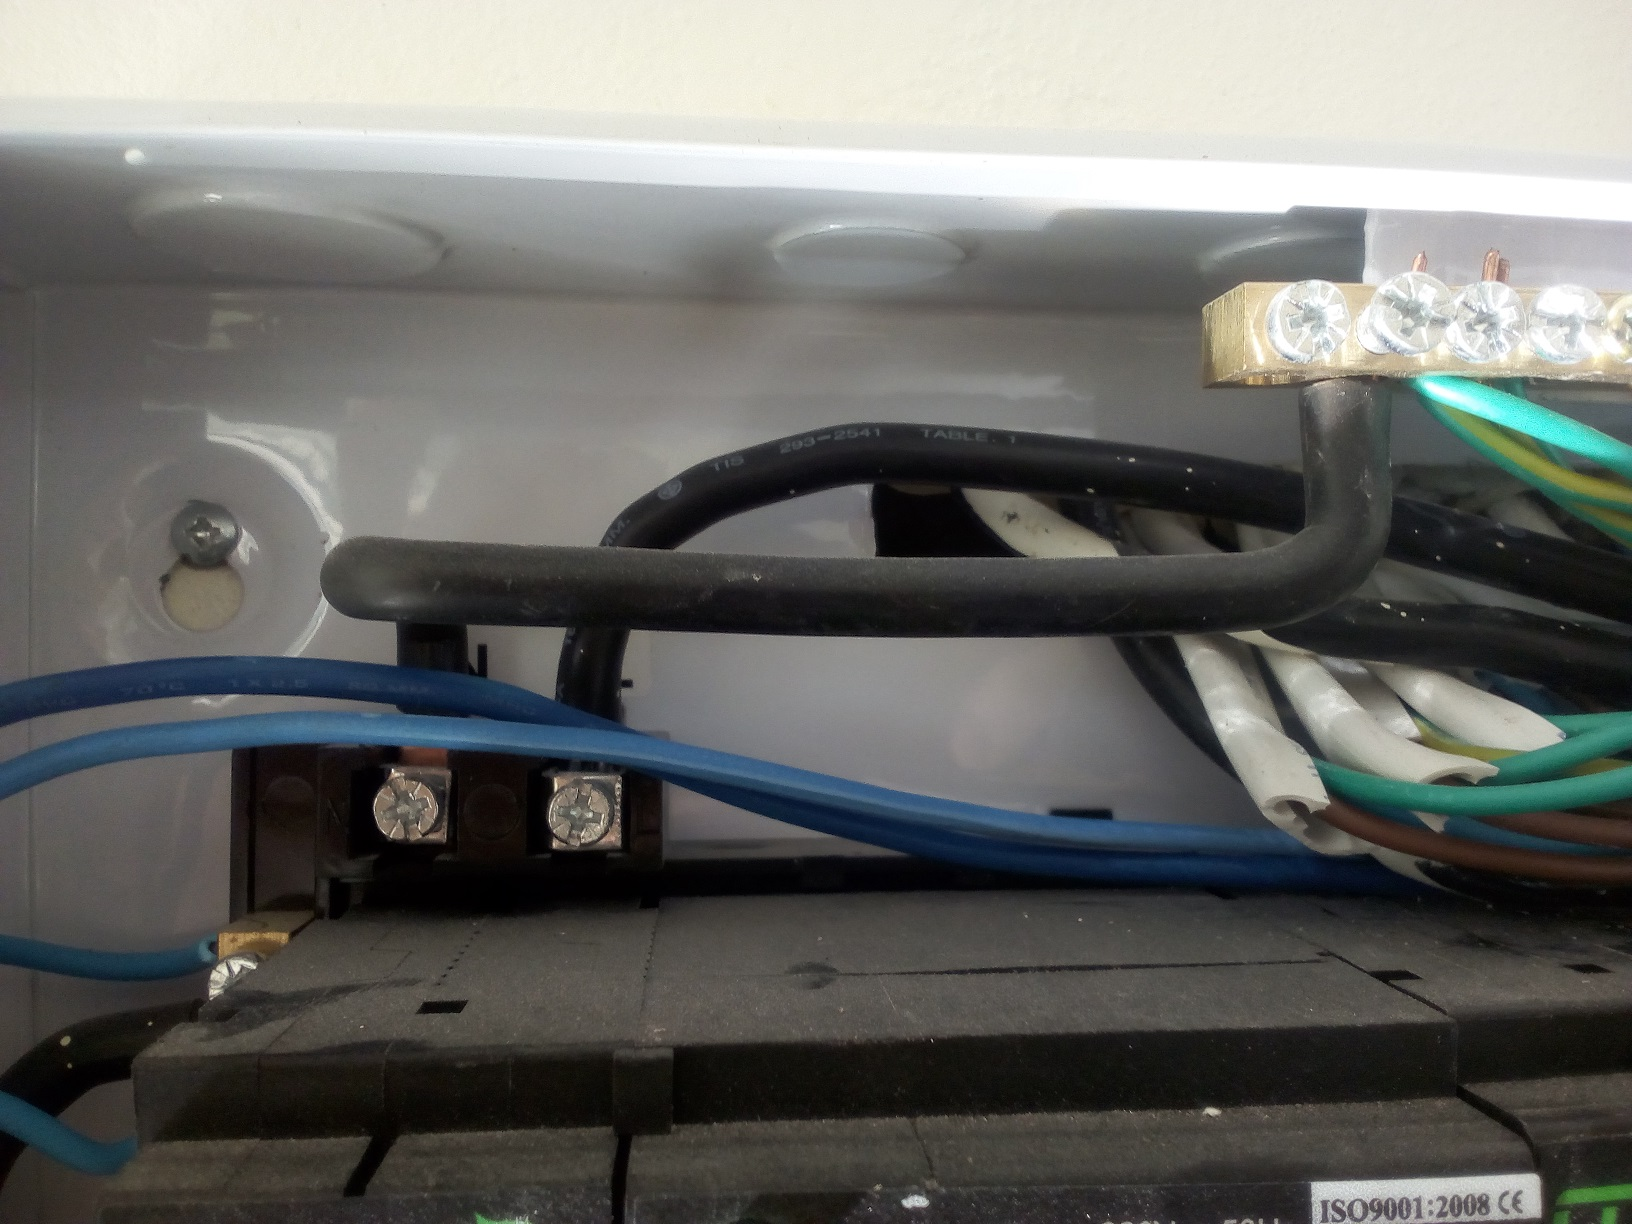 New House Strange Breaker Box Wiring The Electrical Forum Home Circuit Buzzing Top S